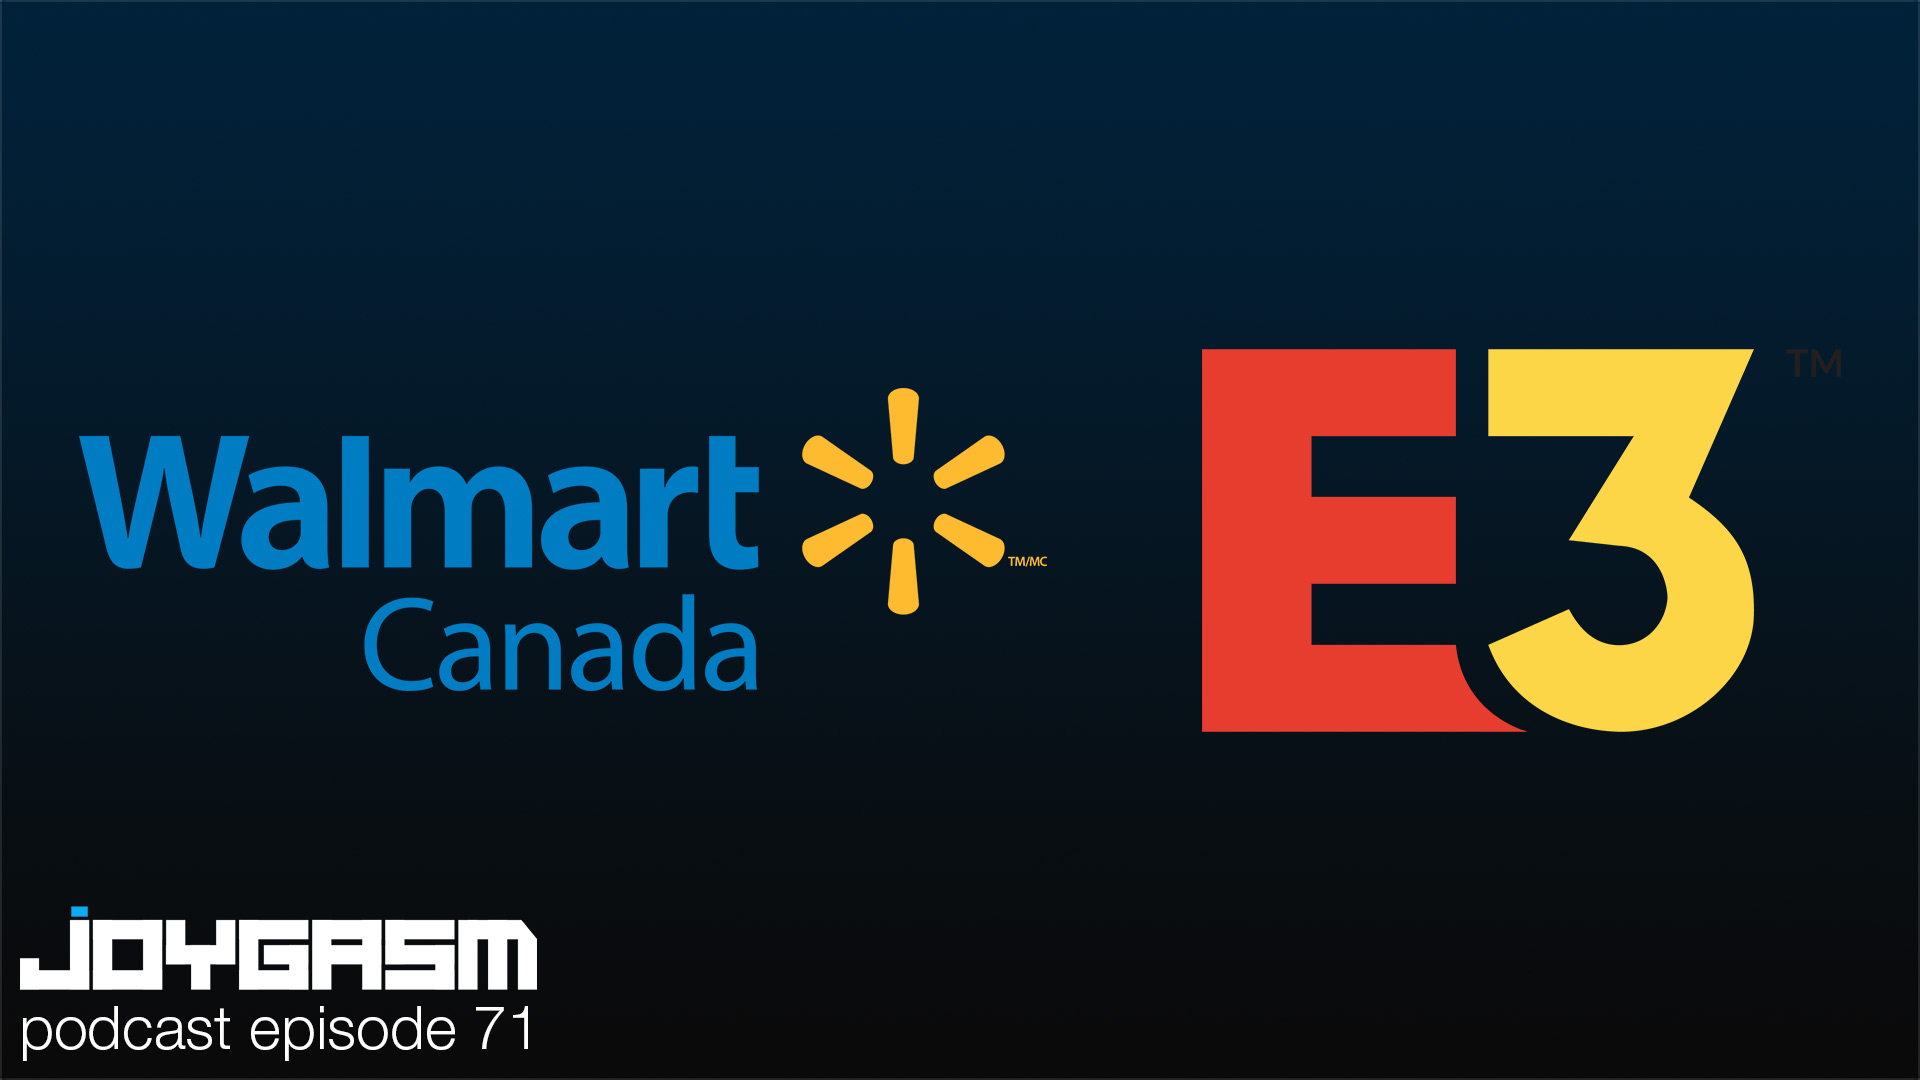 Ep. 71: Walmart Spilling the Beans on AAA Titles Possibly Announced at E3 & More